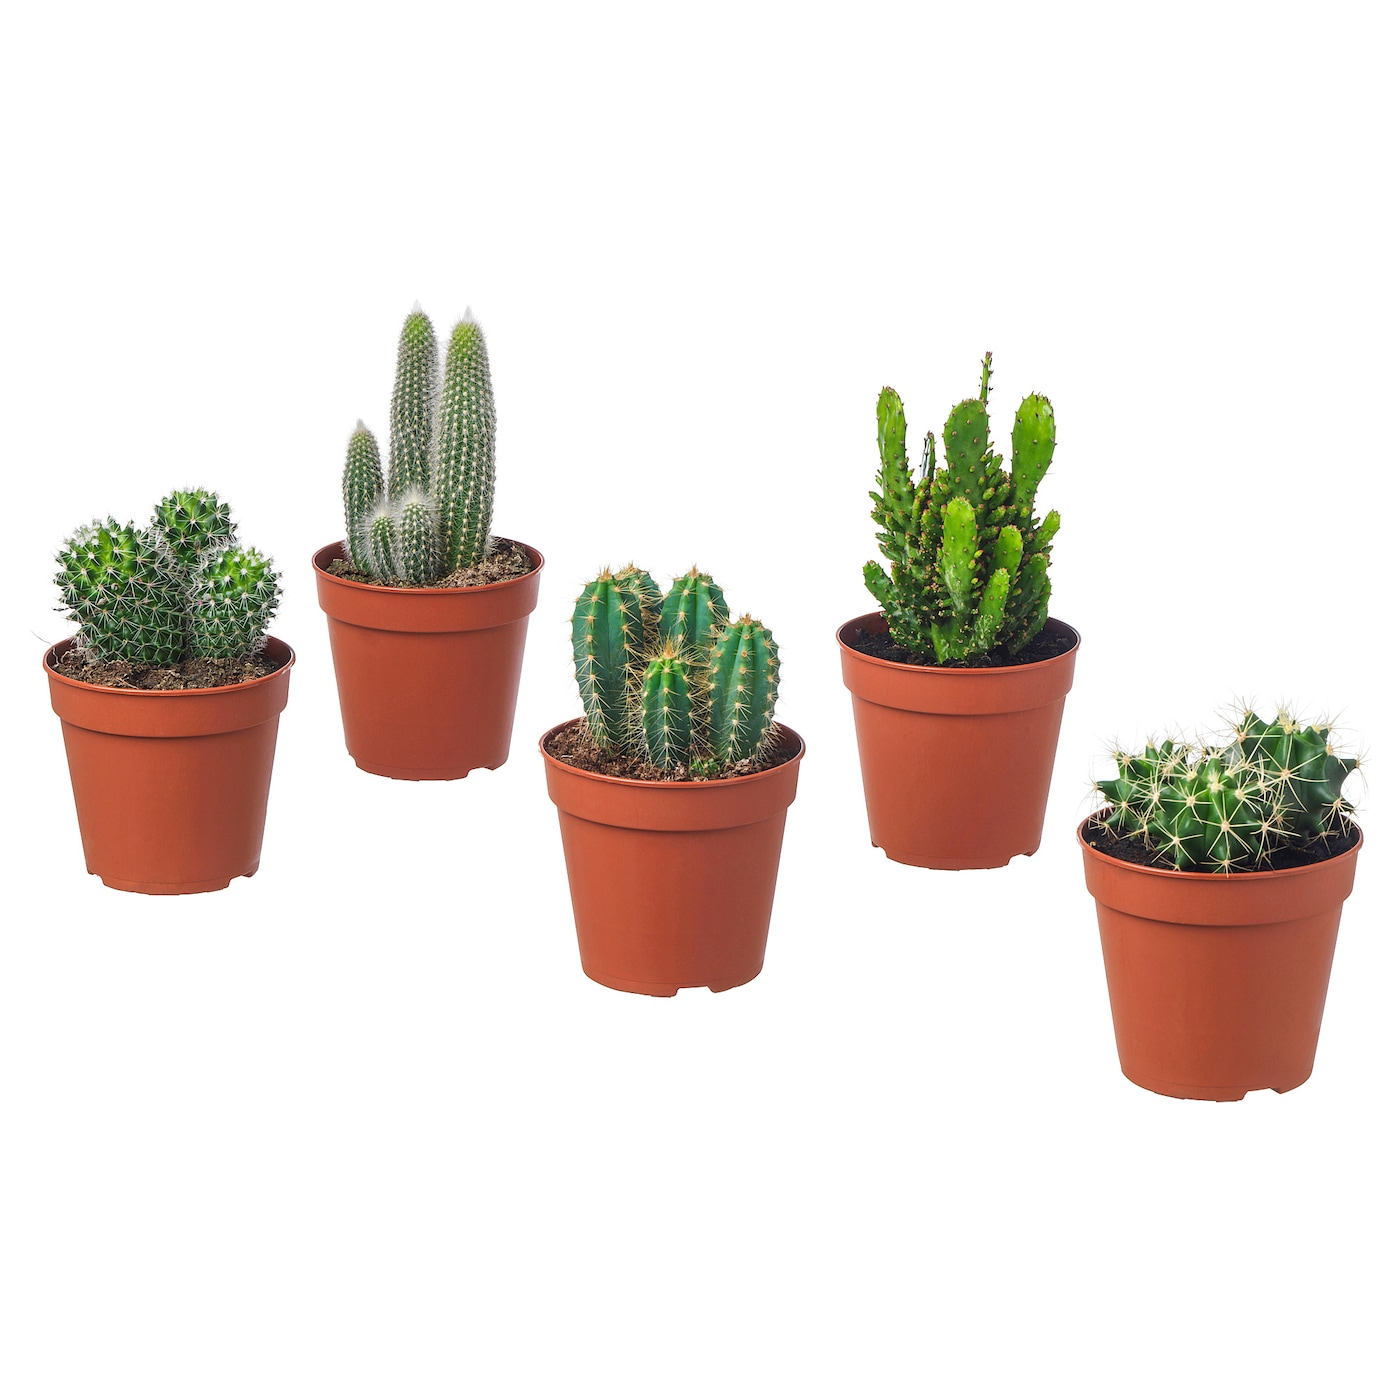 Plants & Cacti - House Plants & Potted Plants - IKEA